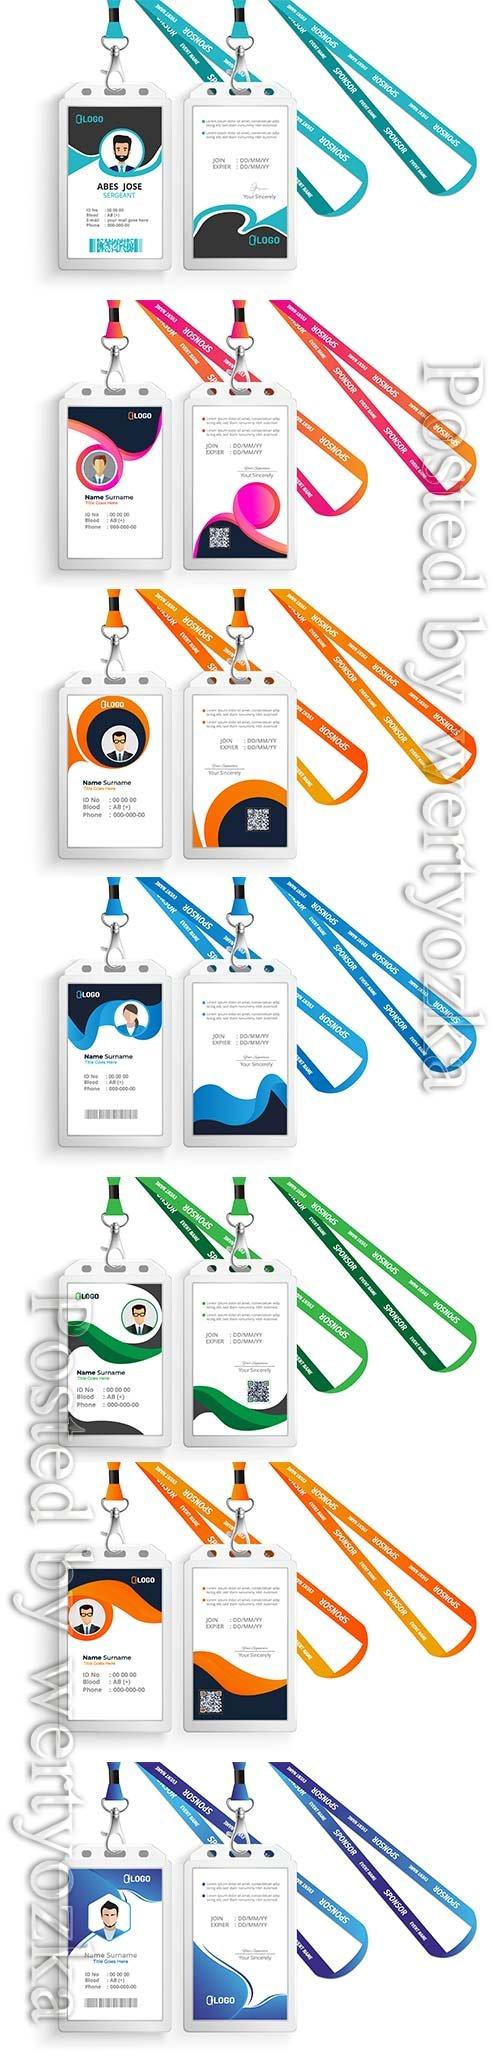 Id card with lanyard design set isolated vector illustration